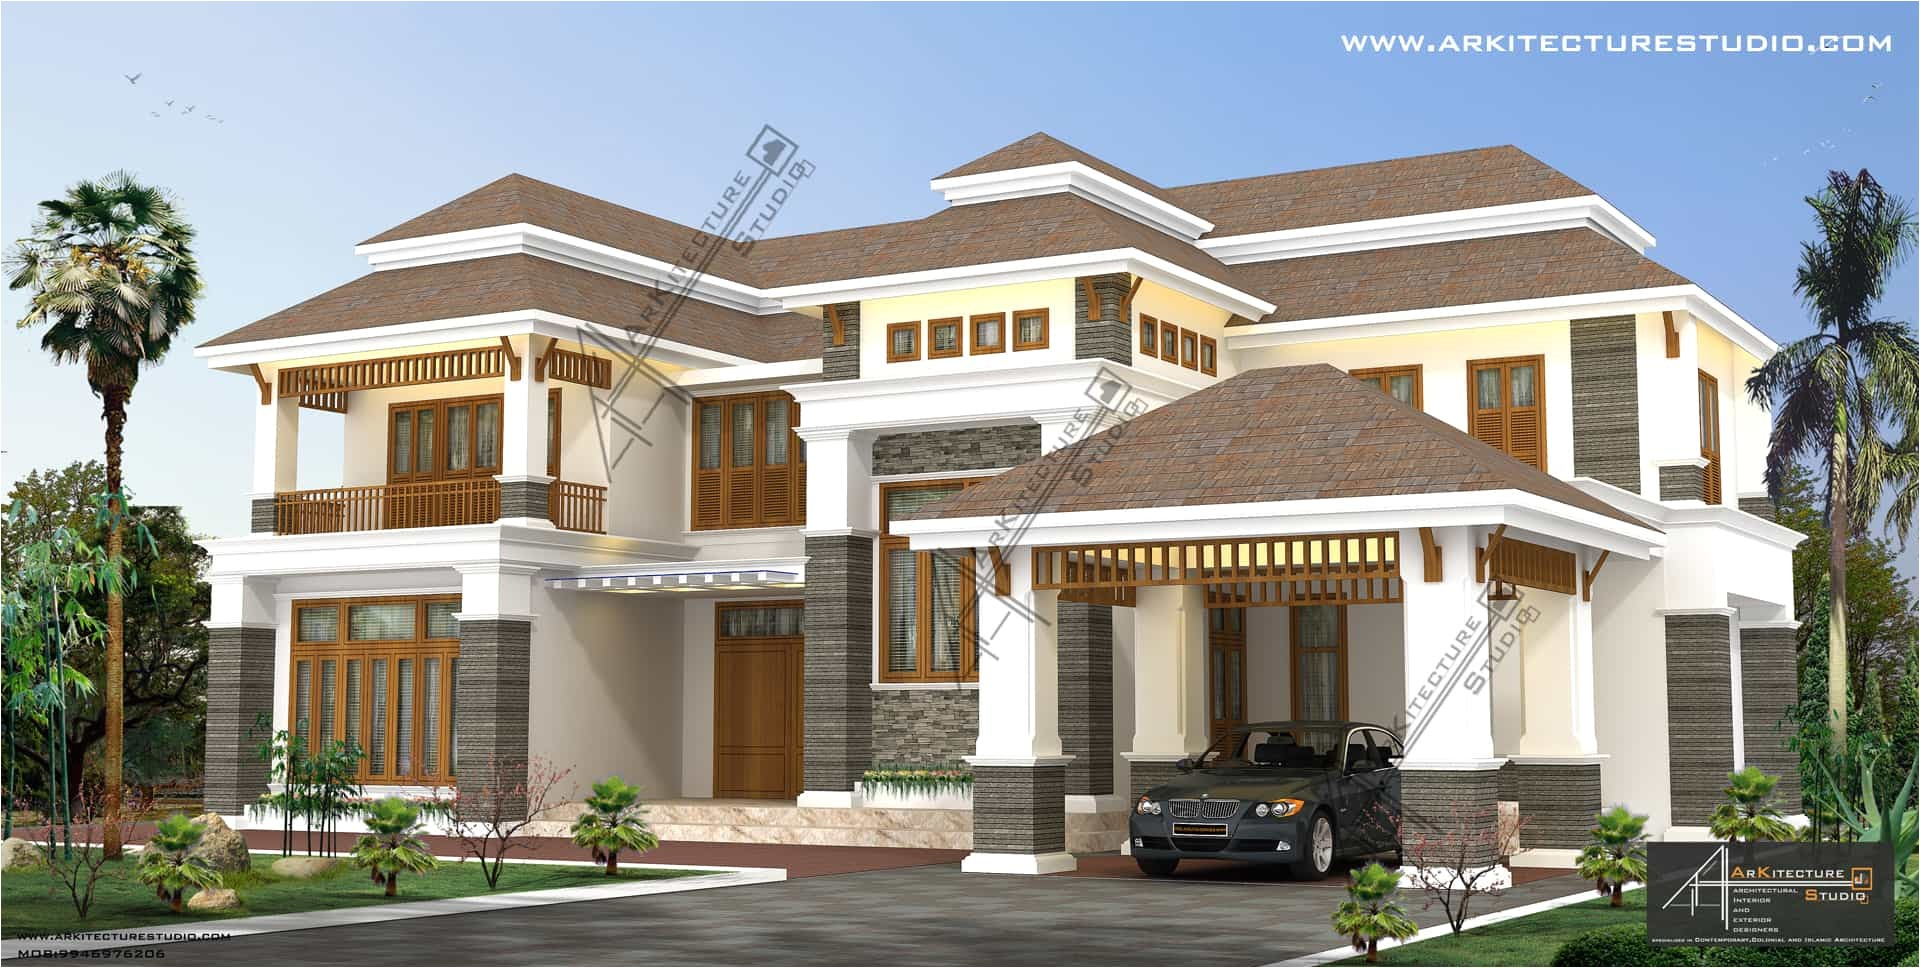 new colonial style house designs in kerala at 3500 sq ft and 5000 sq ft